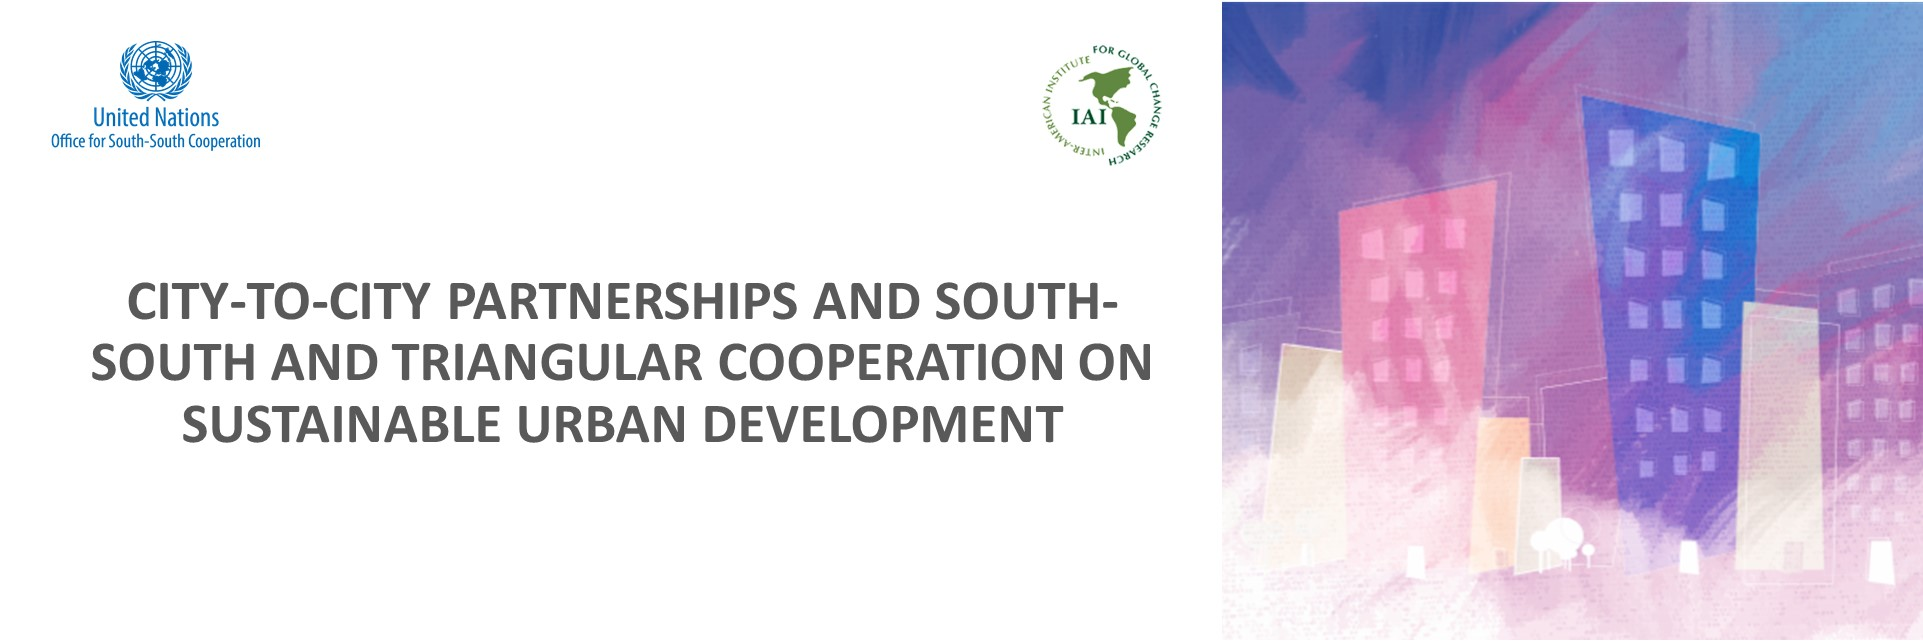 City to City Partnerships and South-South and Triangular Cooperation on Sustainable Urban Development Image Linking to the City to City Page